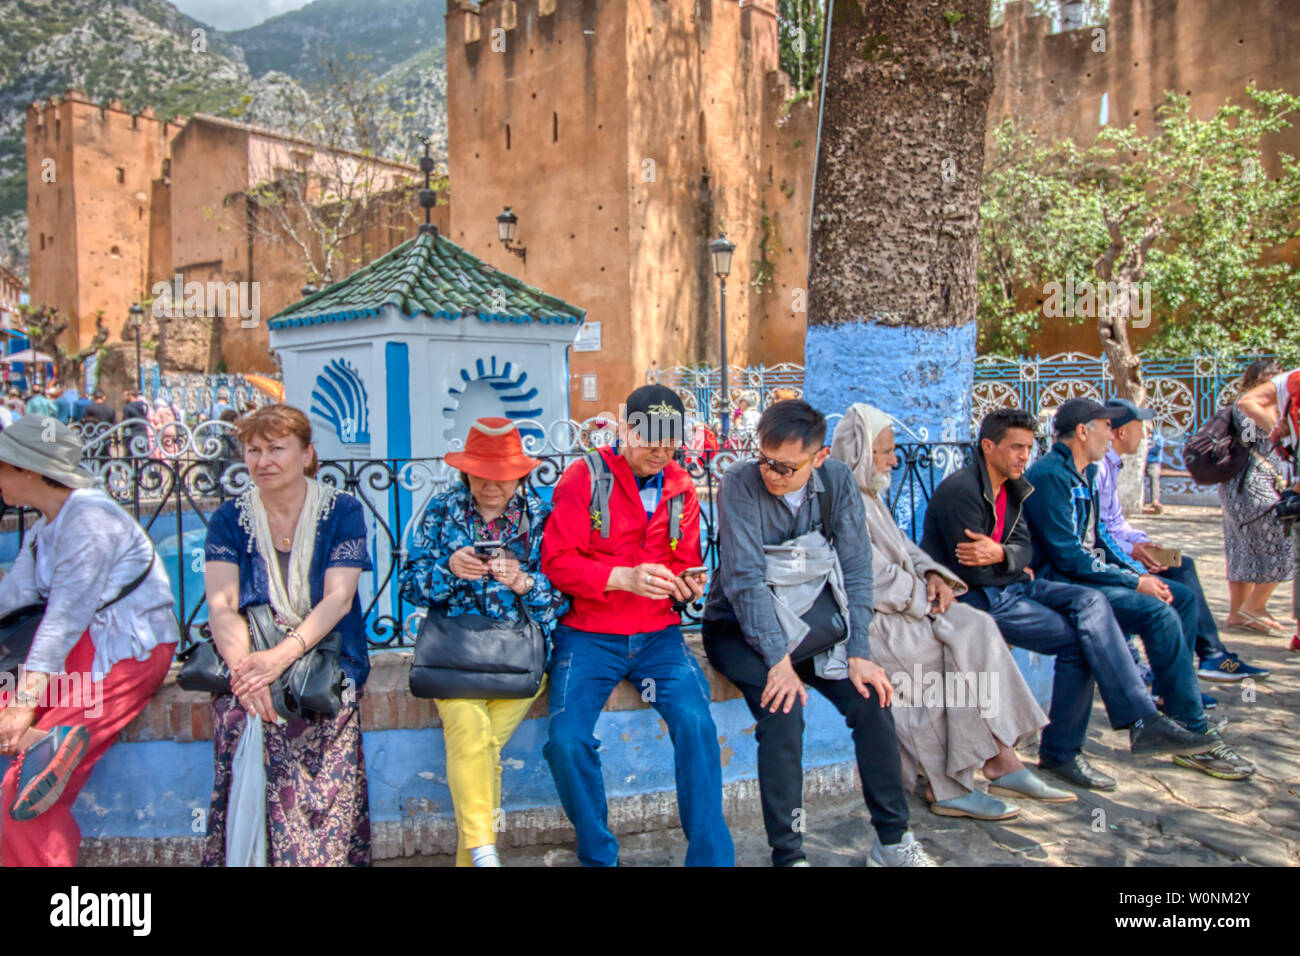 Chefchaouen, Morocco - May 3, 2019: Asian tourists looking at their mobiles in Chefchaouen, Morocco - Stock Image